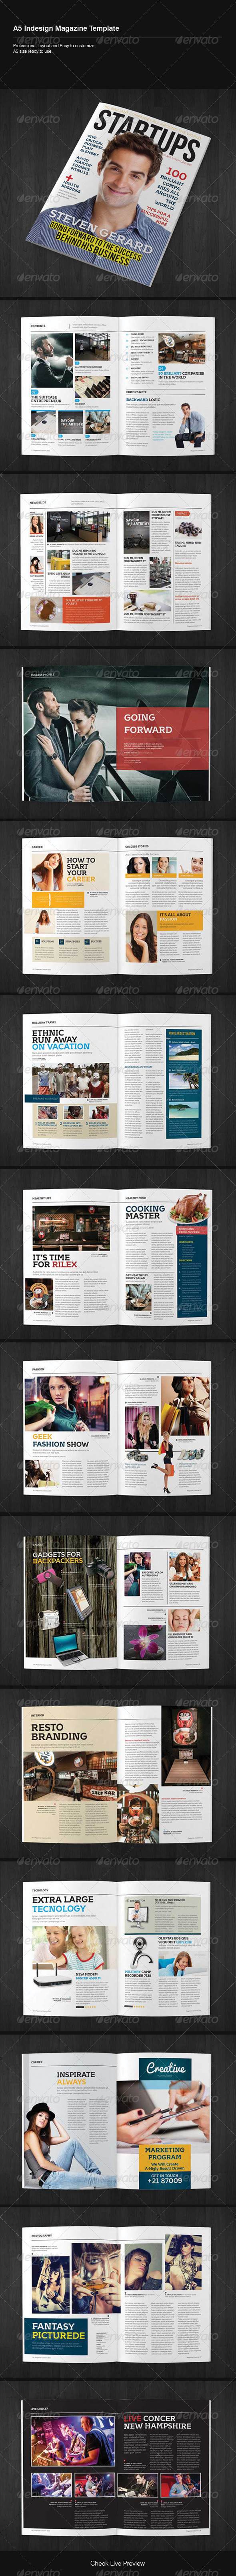 GraphicRiver Indesign Magazine Template 5474768